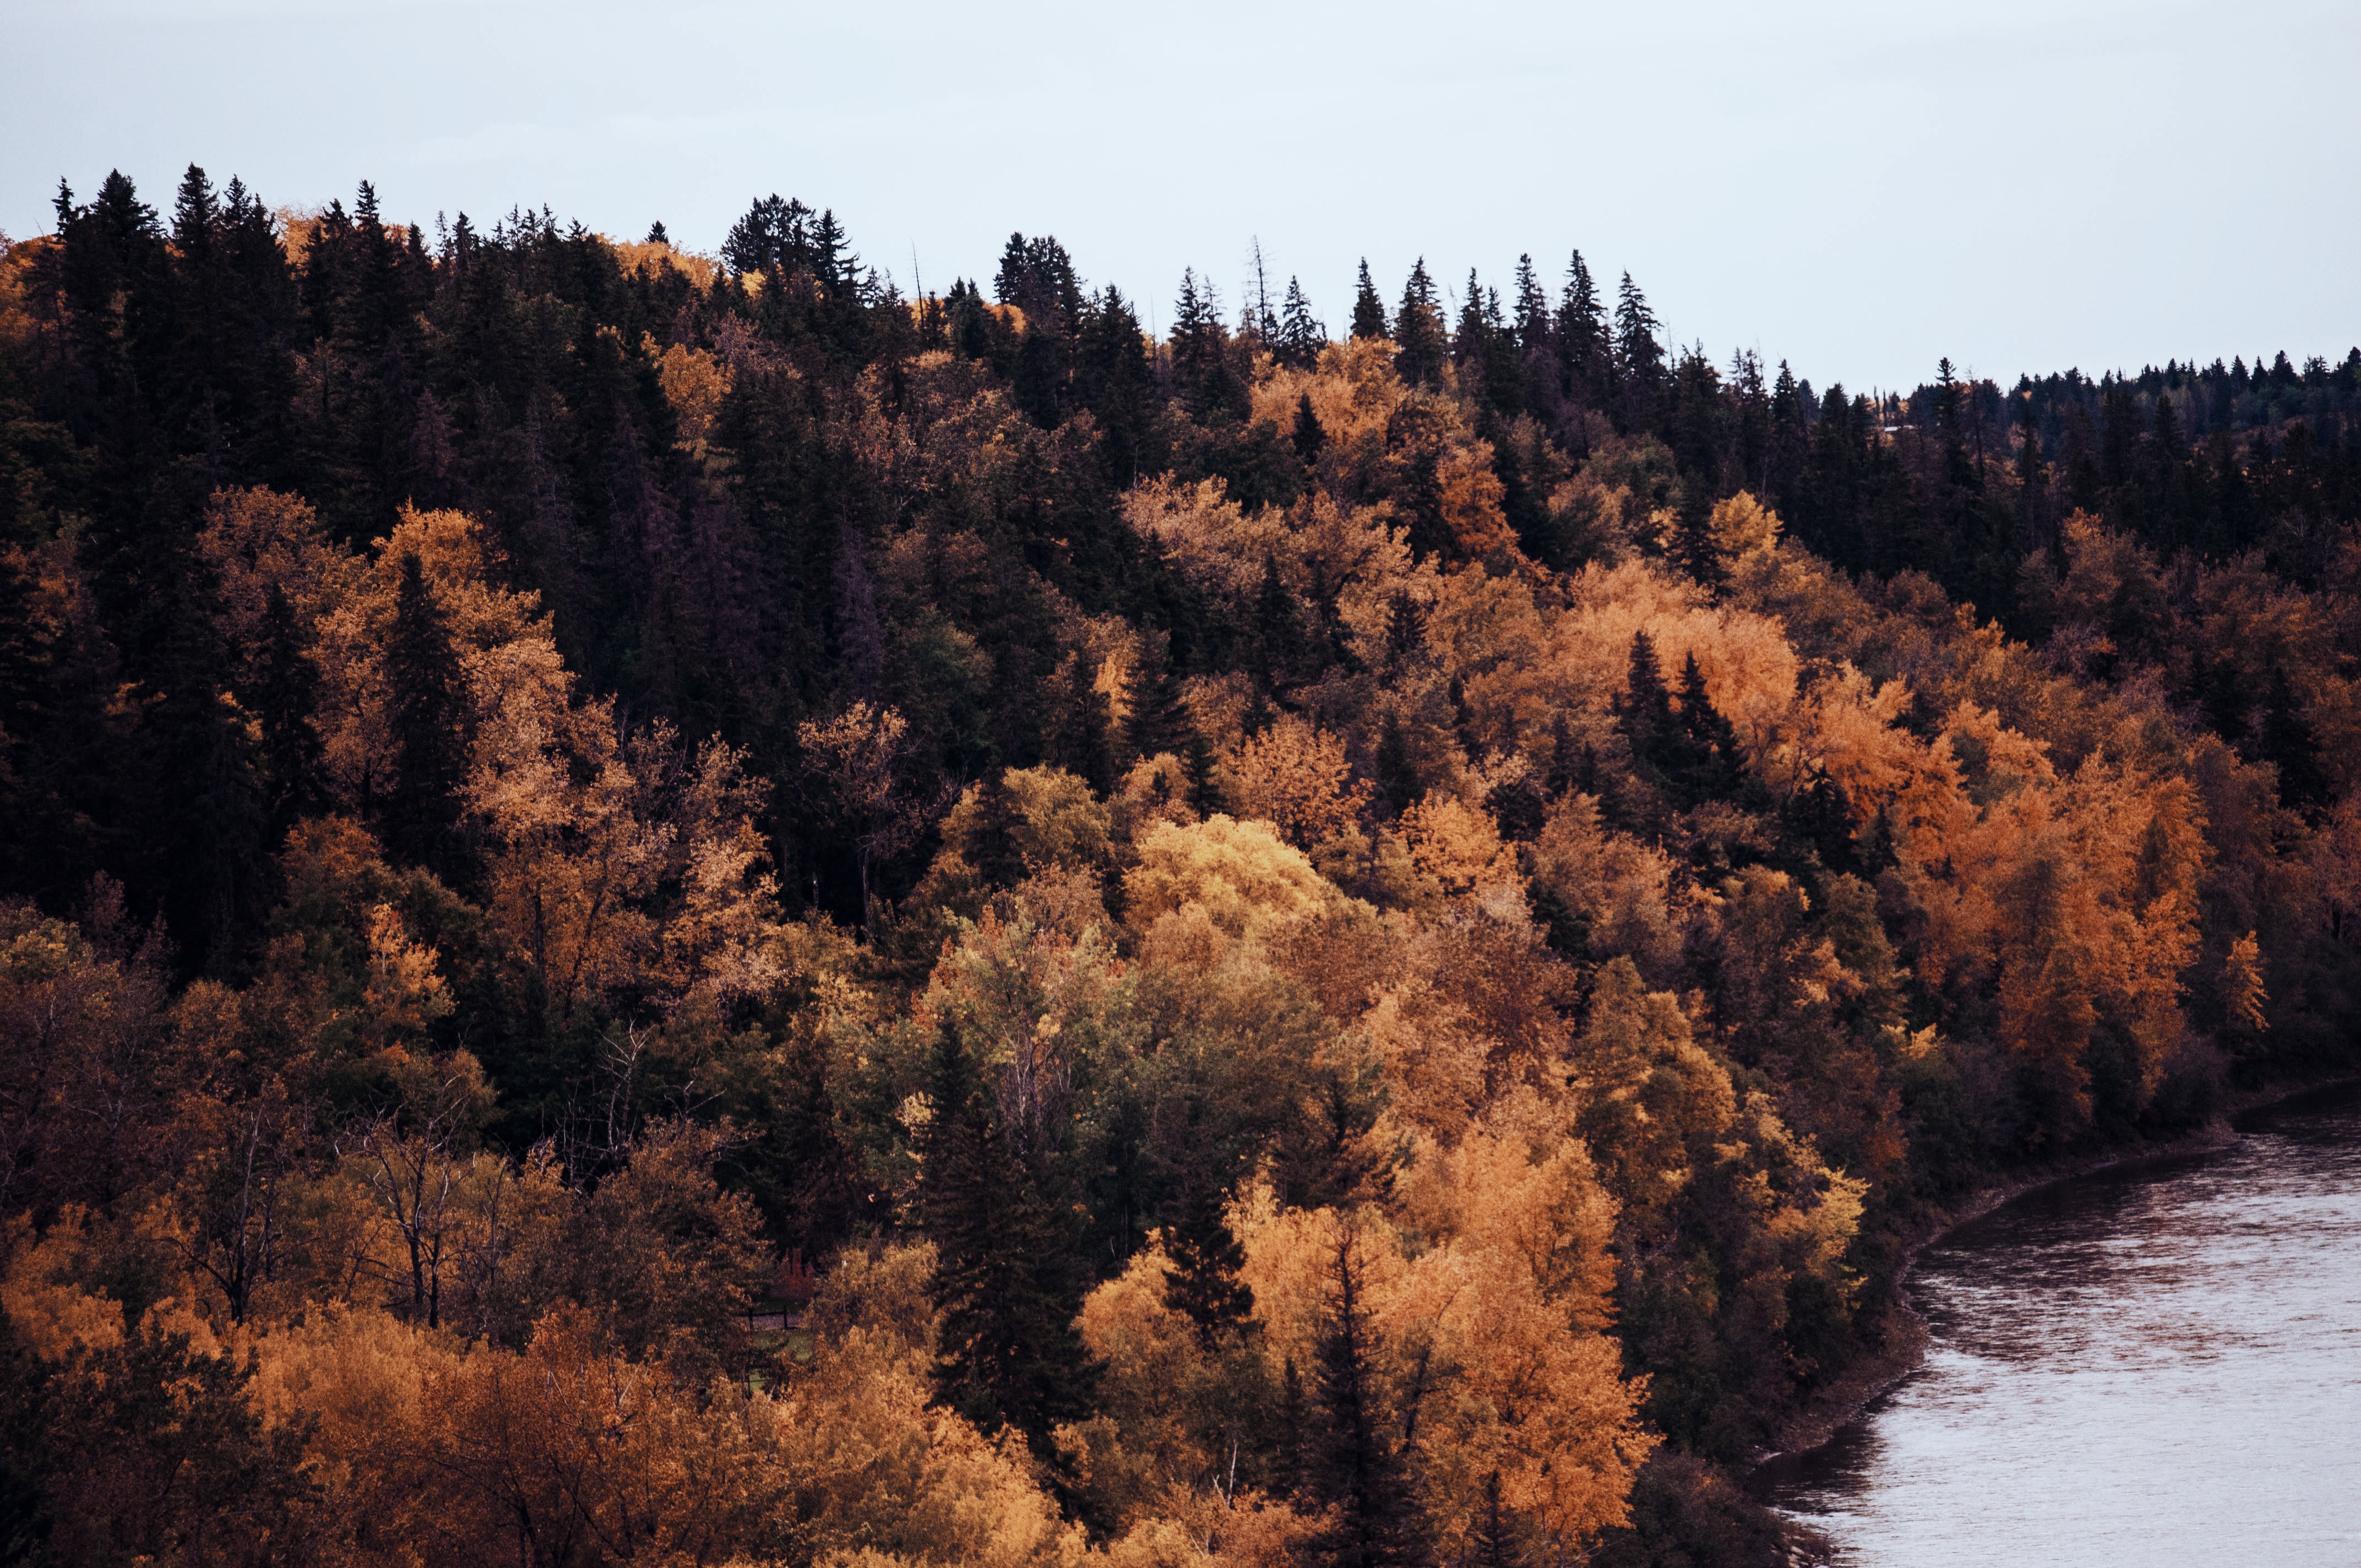 Orange-leaved trees on the bank of a river